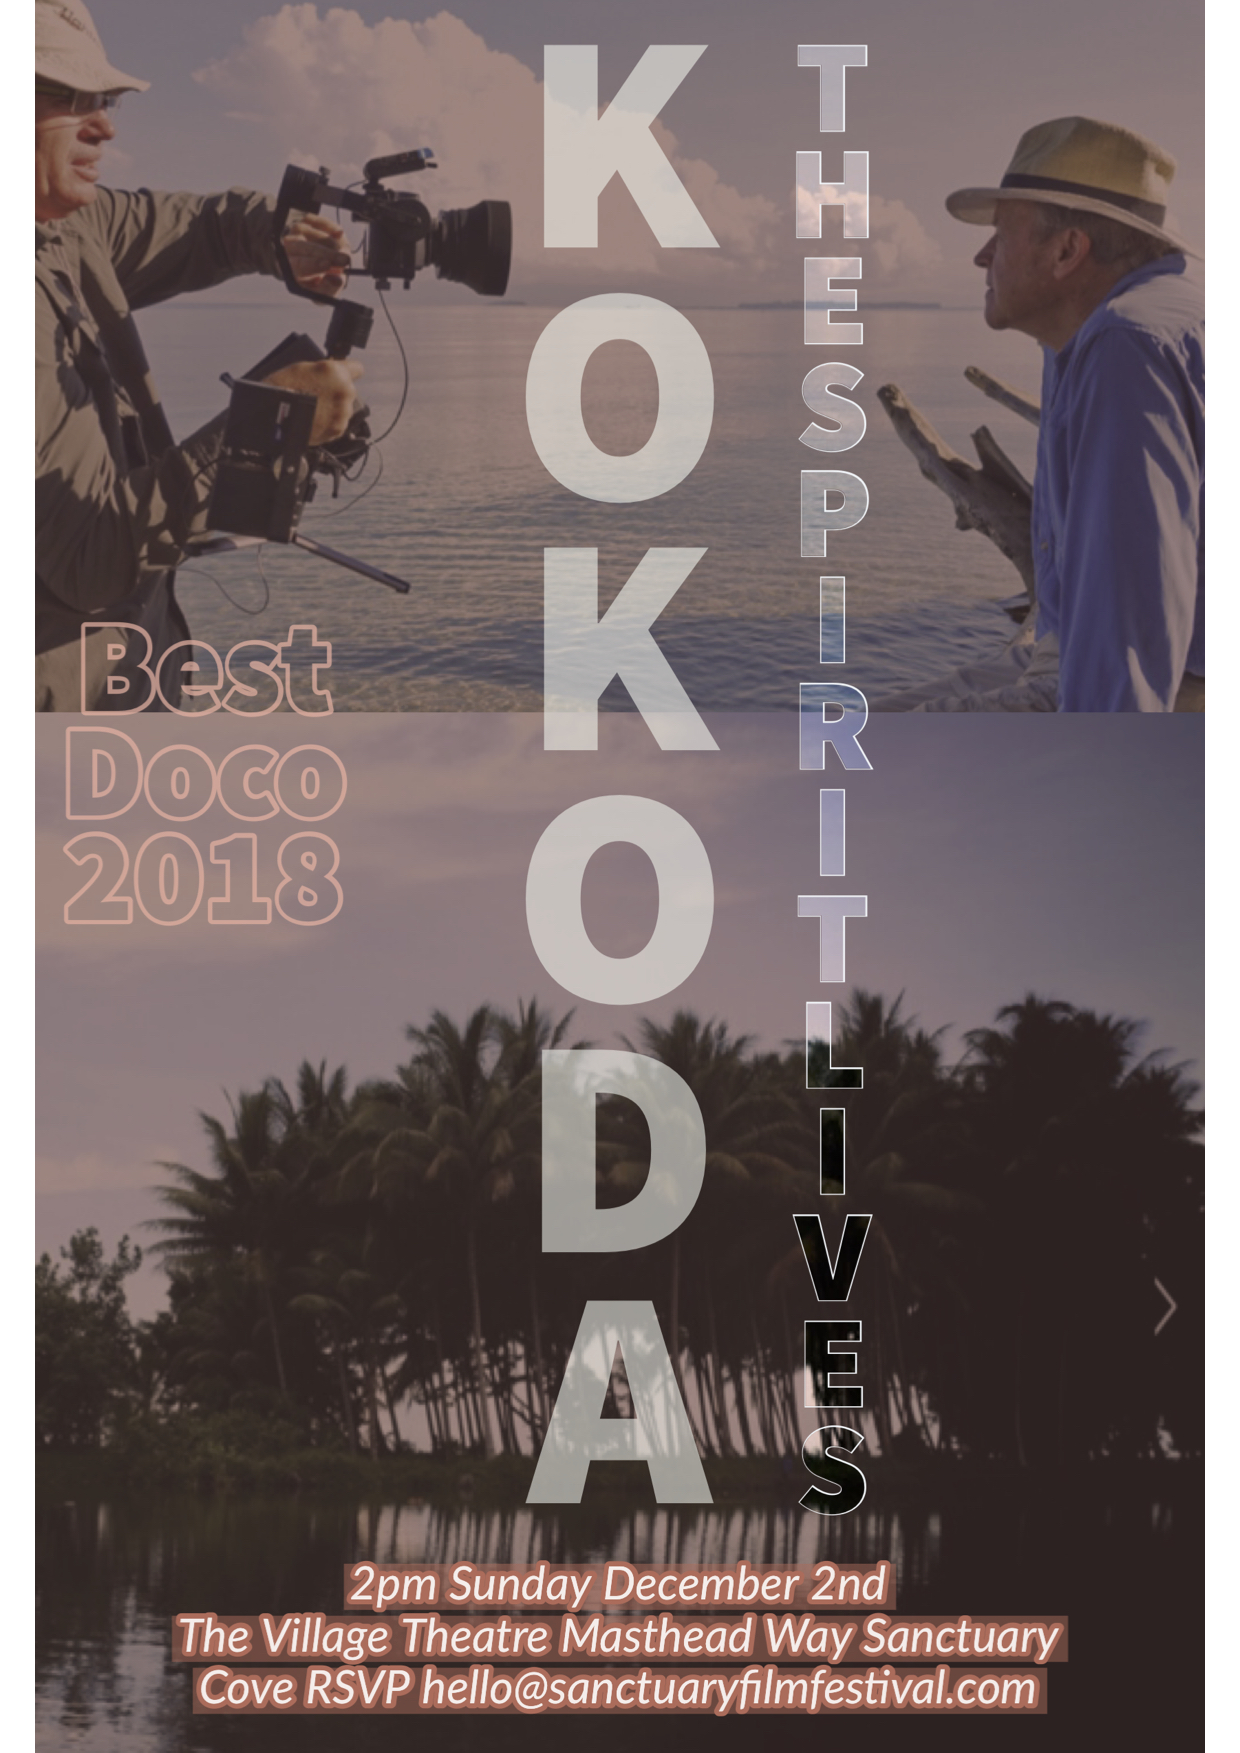 Our feature documentary, KOKODA, THE SPIRIT LIVES, won the best documentary award at the Sanctuary Film Festival. We're delighted and honoured.  #kokodathespiritlives   #kokoda   #WWII  #documentary   #sanctuaryfilmfestival   #limetreestudios   #Kokodacampaign